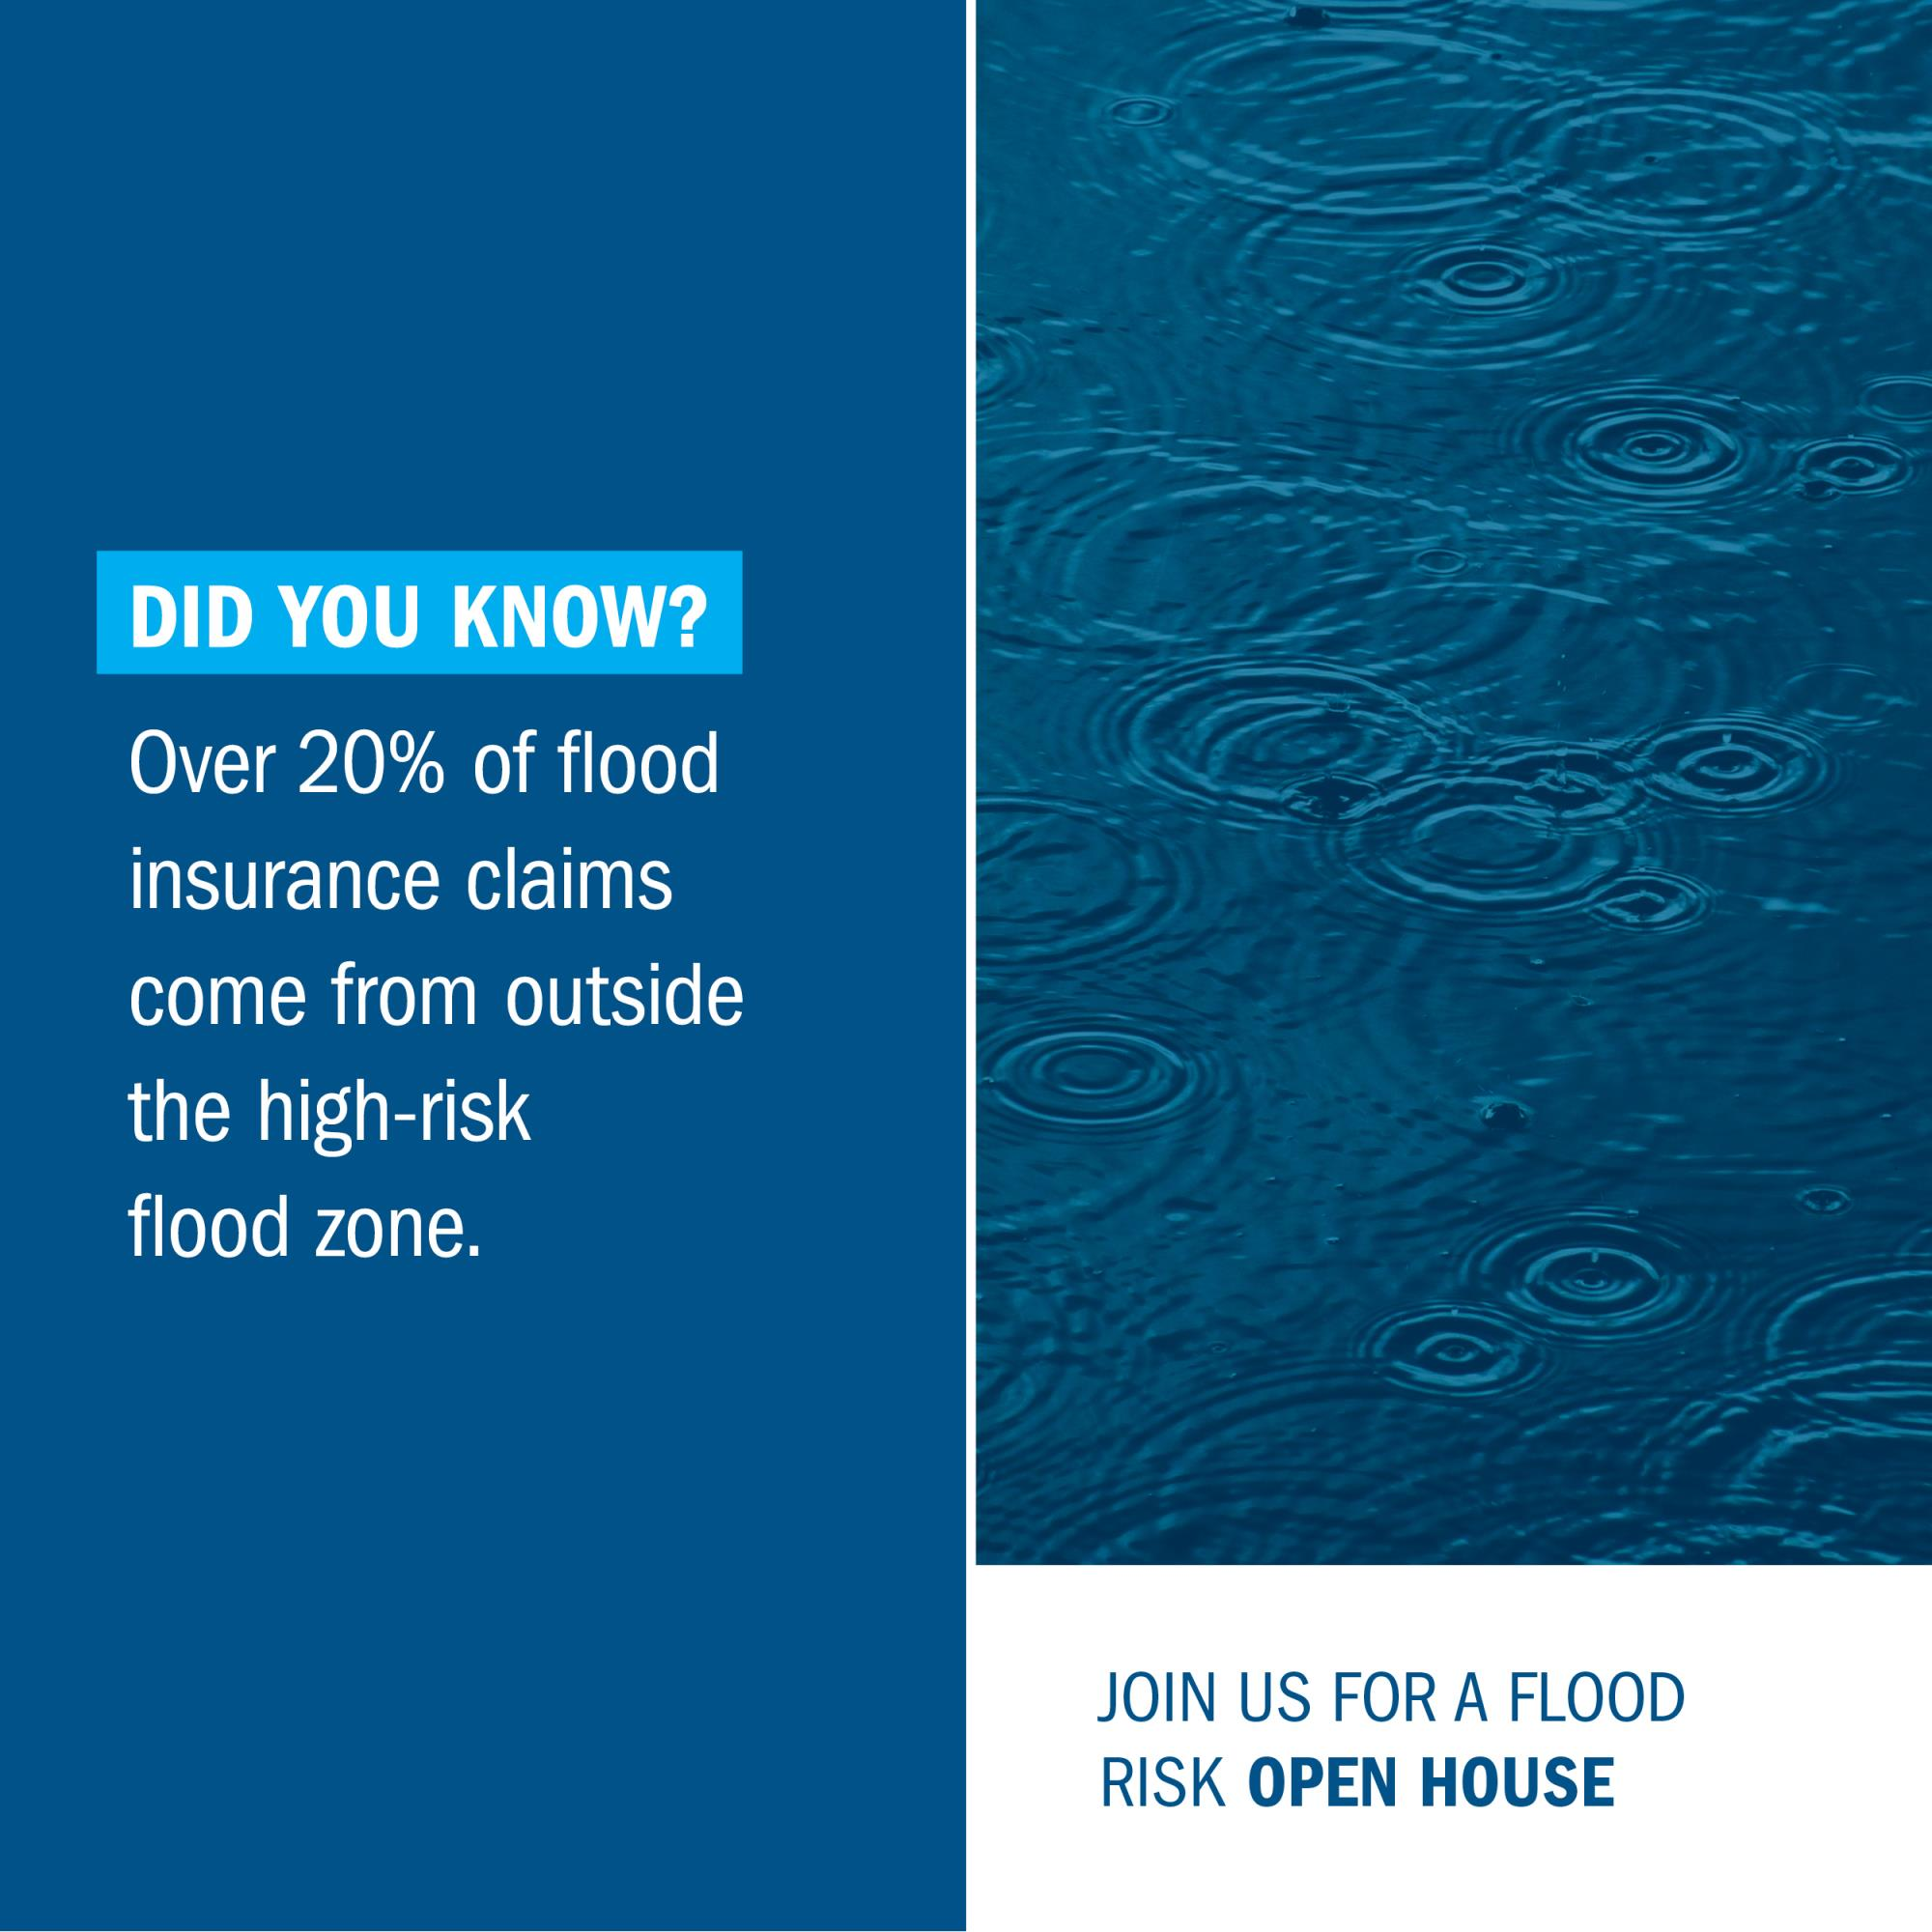 County Flood Maps Are Changing - Attend a Public Flood Risk Open House